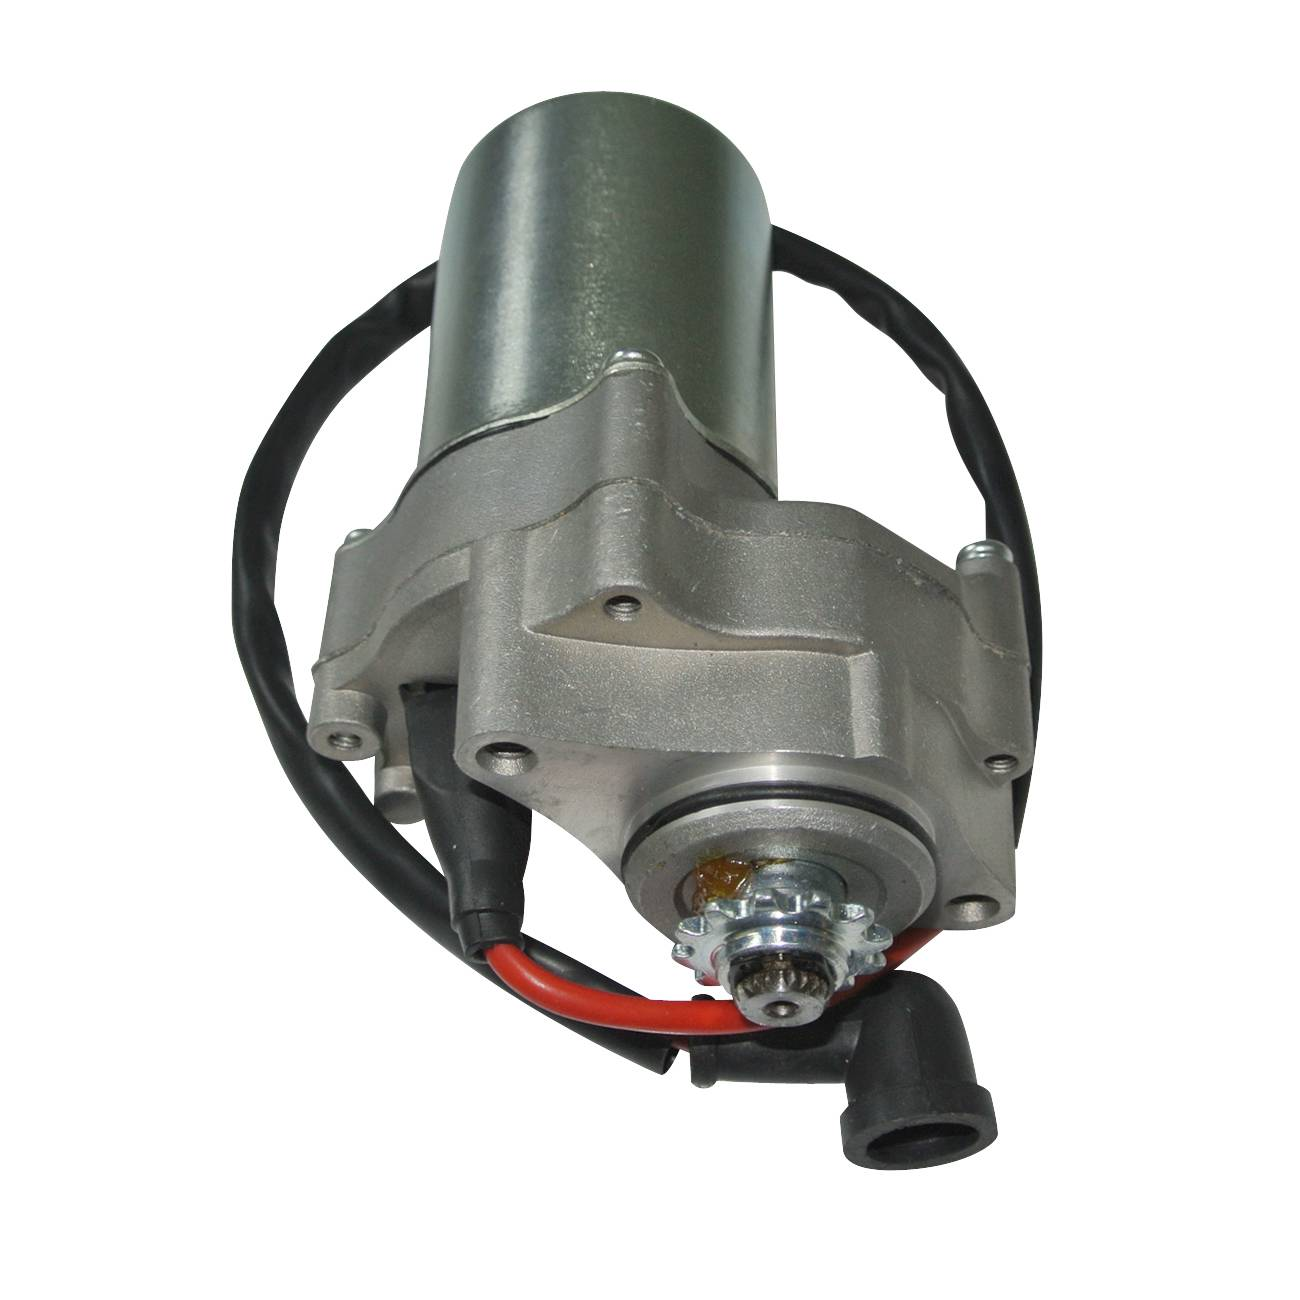 Electric Starter Ignition For 50cc 70cc 90cc <font><b>110cc</b></font> 125cc <font><b>AtV</b></font> Quad Pit Bike Part image